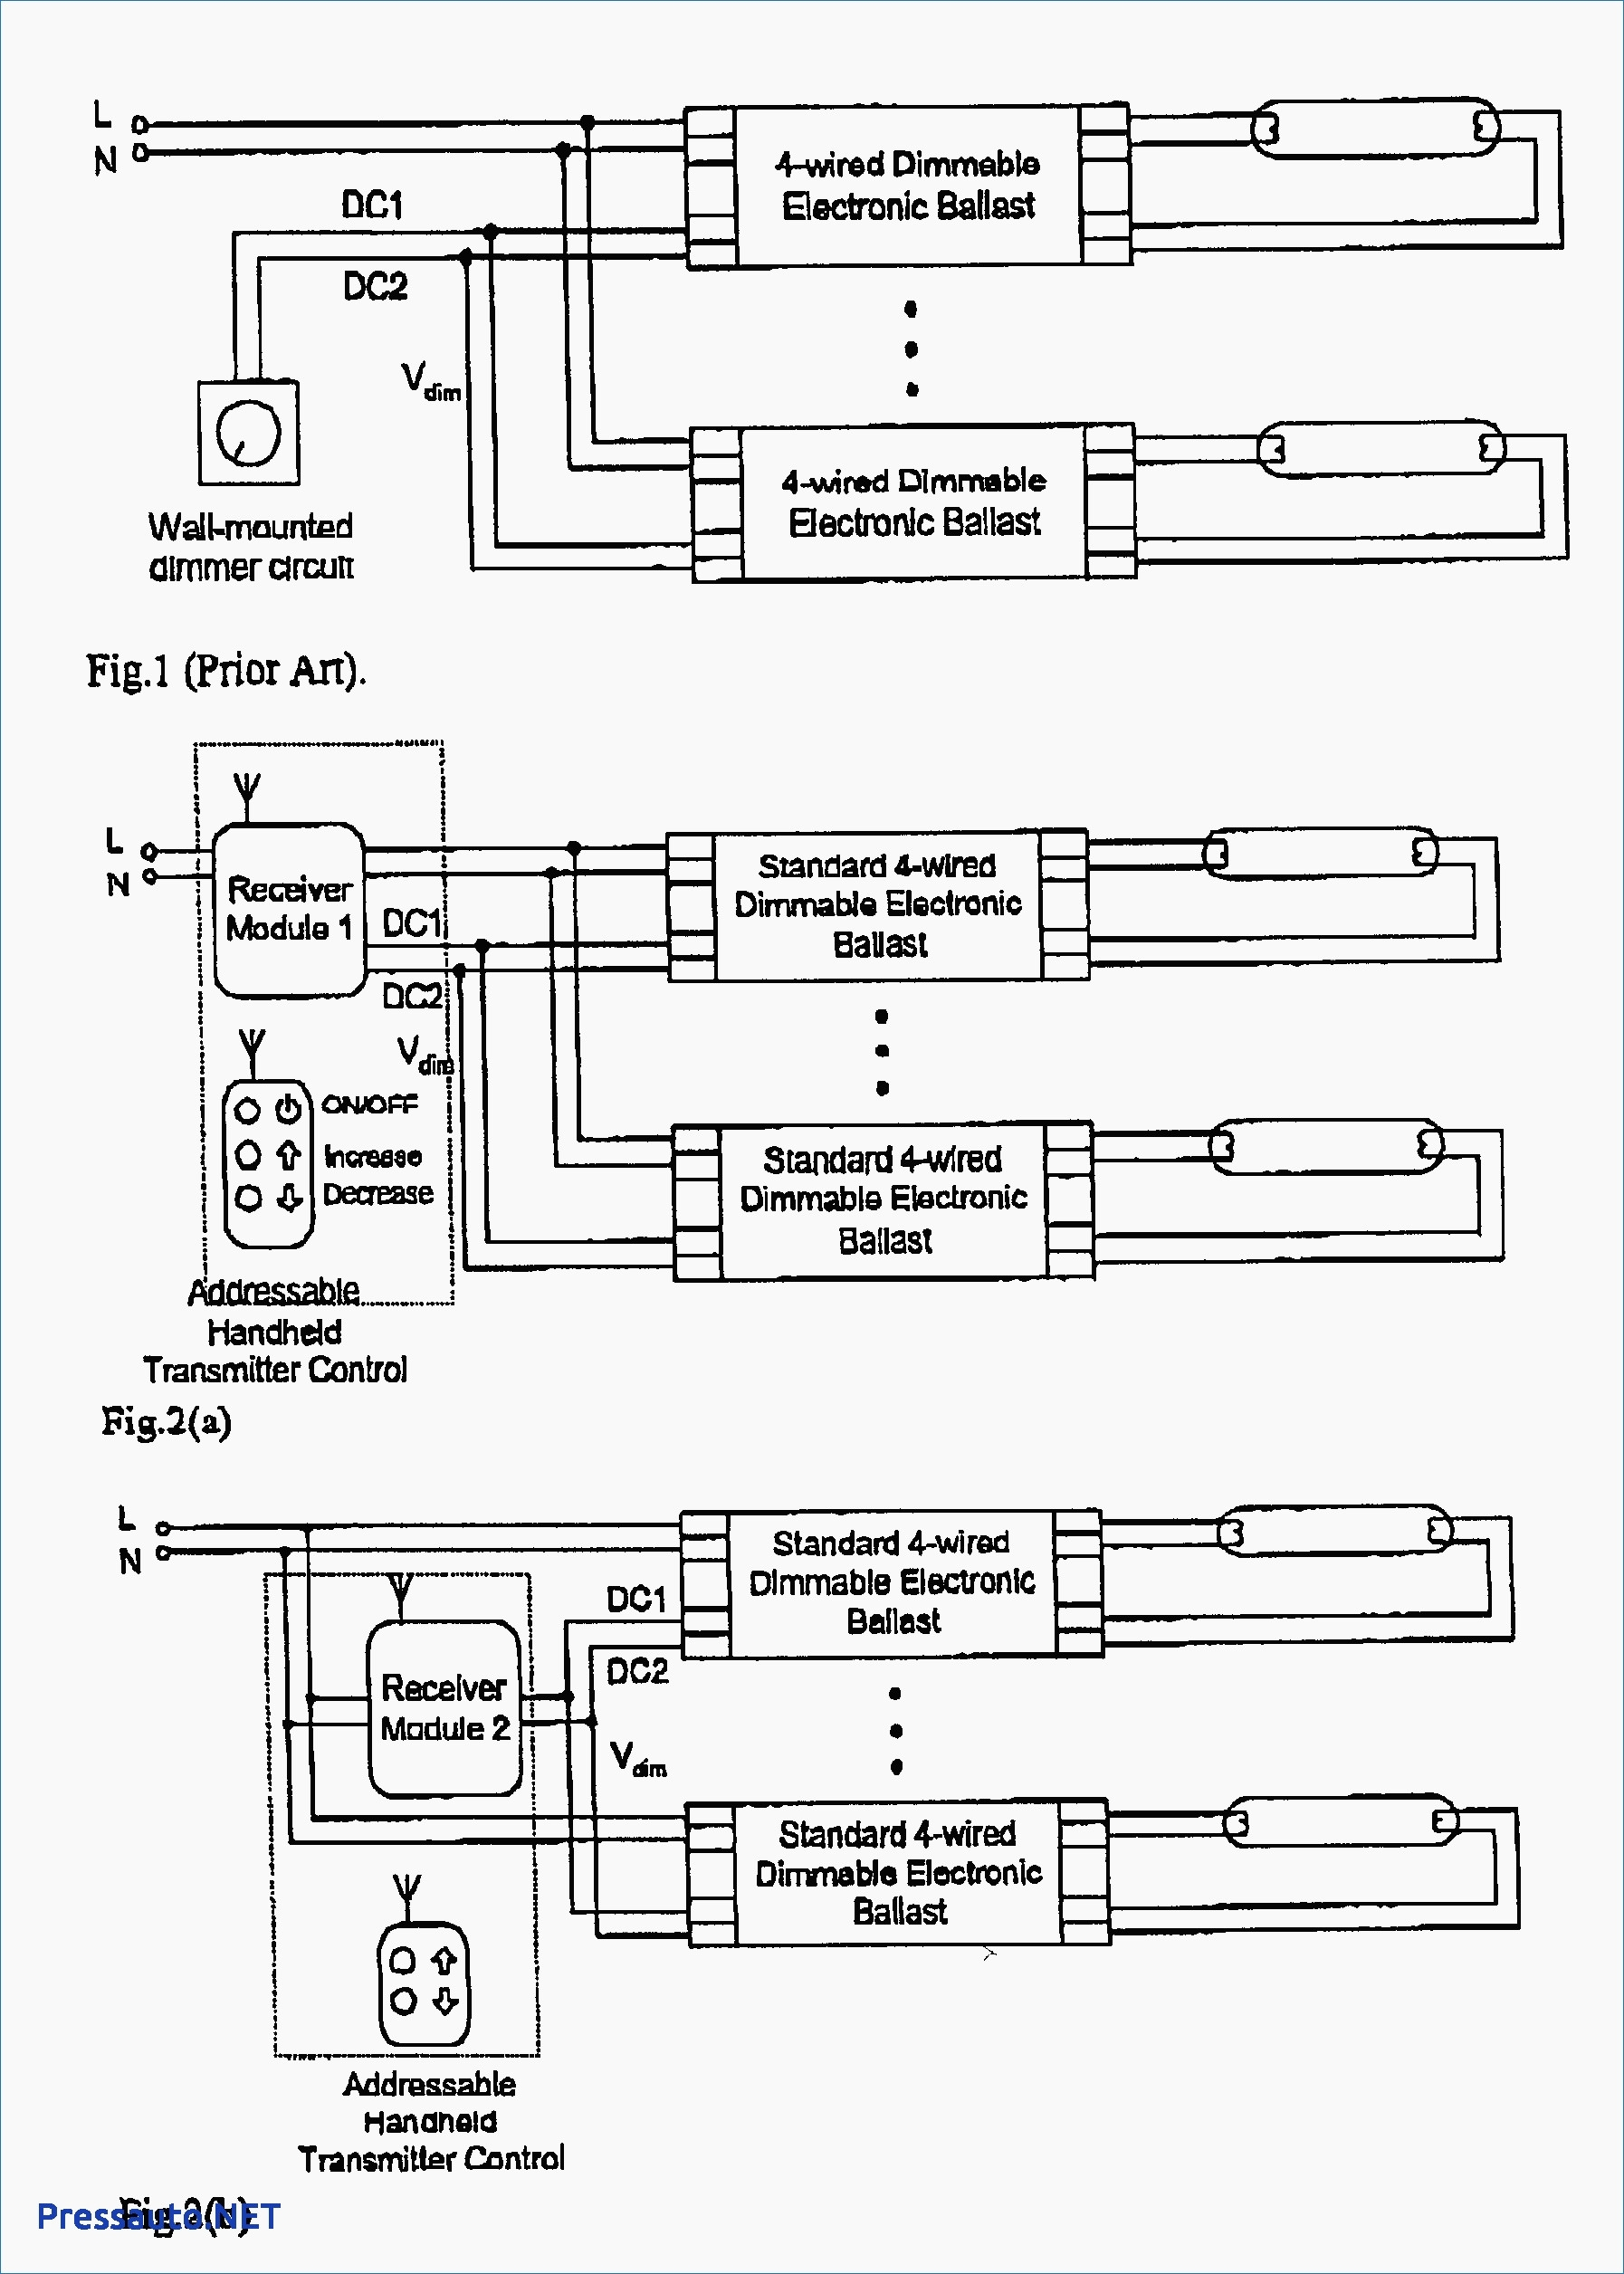 dimmable ballast wiring diagram Collection-Dimmer 3 Way Switch Wiring 0 10v Led Dimmer Wiring Diagram 3 Way Advance Ballast 11-t